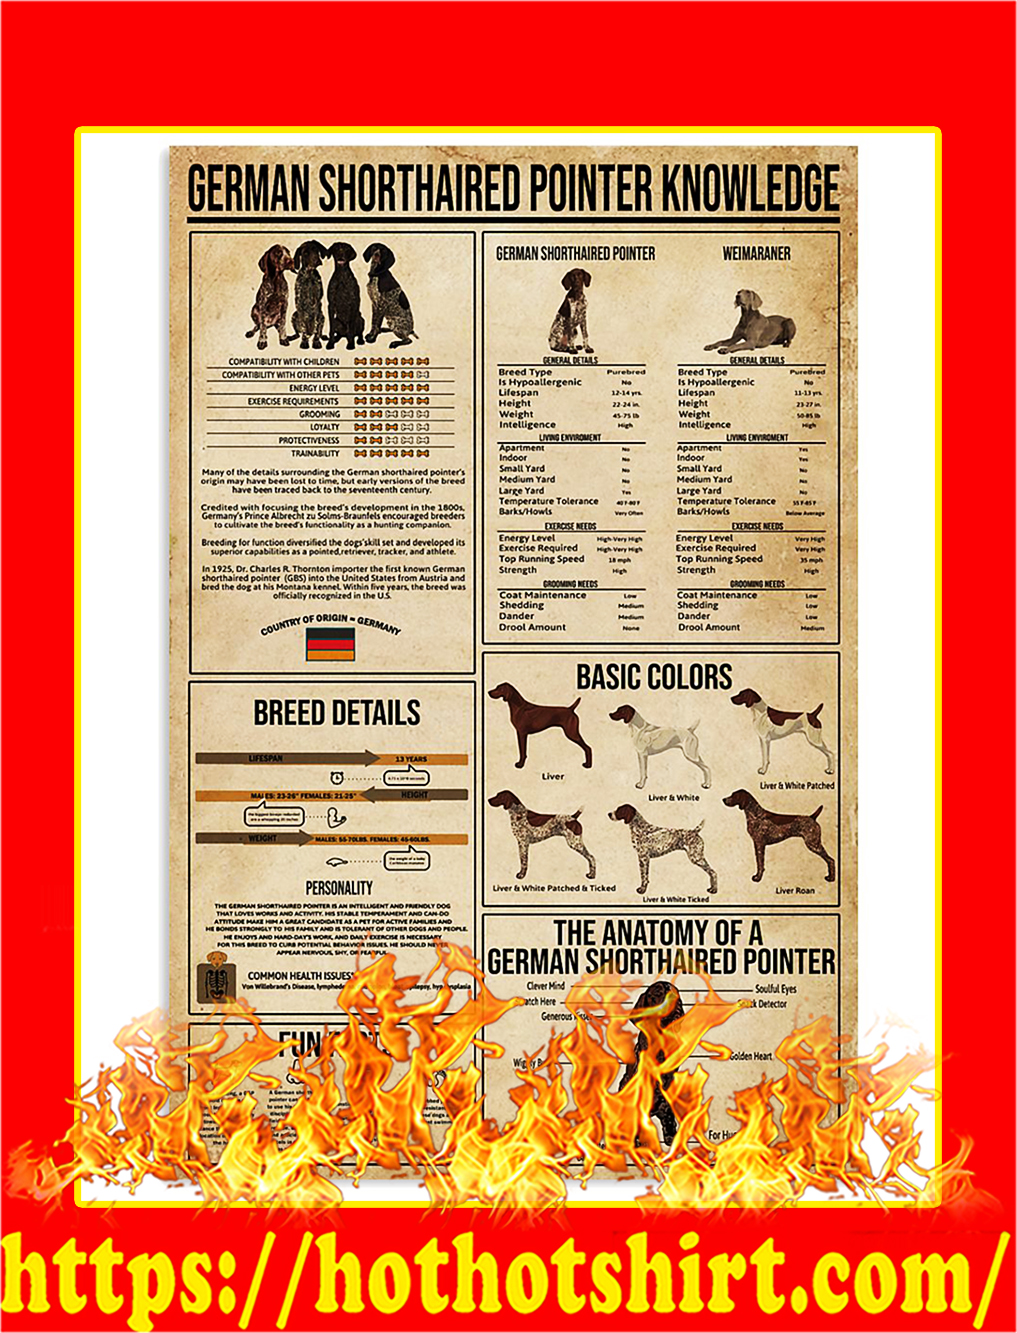 German Shorthaired Pointer Knowledge Poster - A2